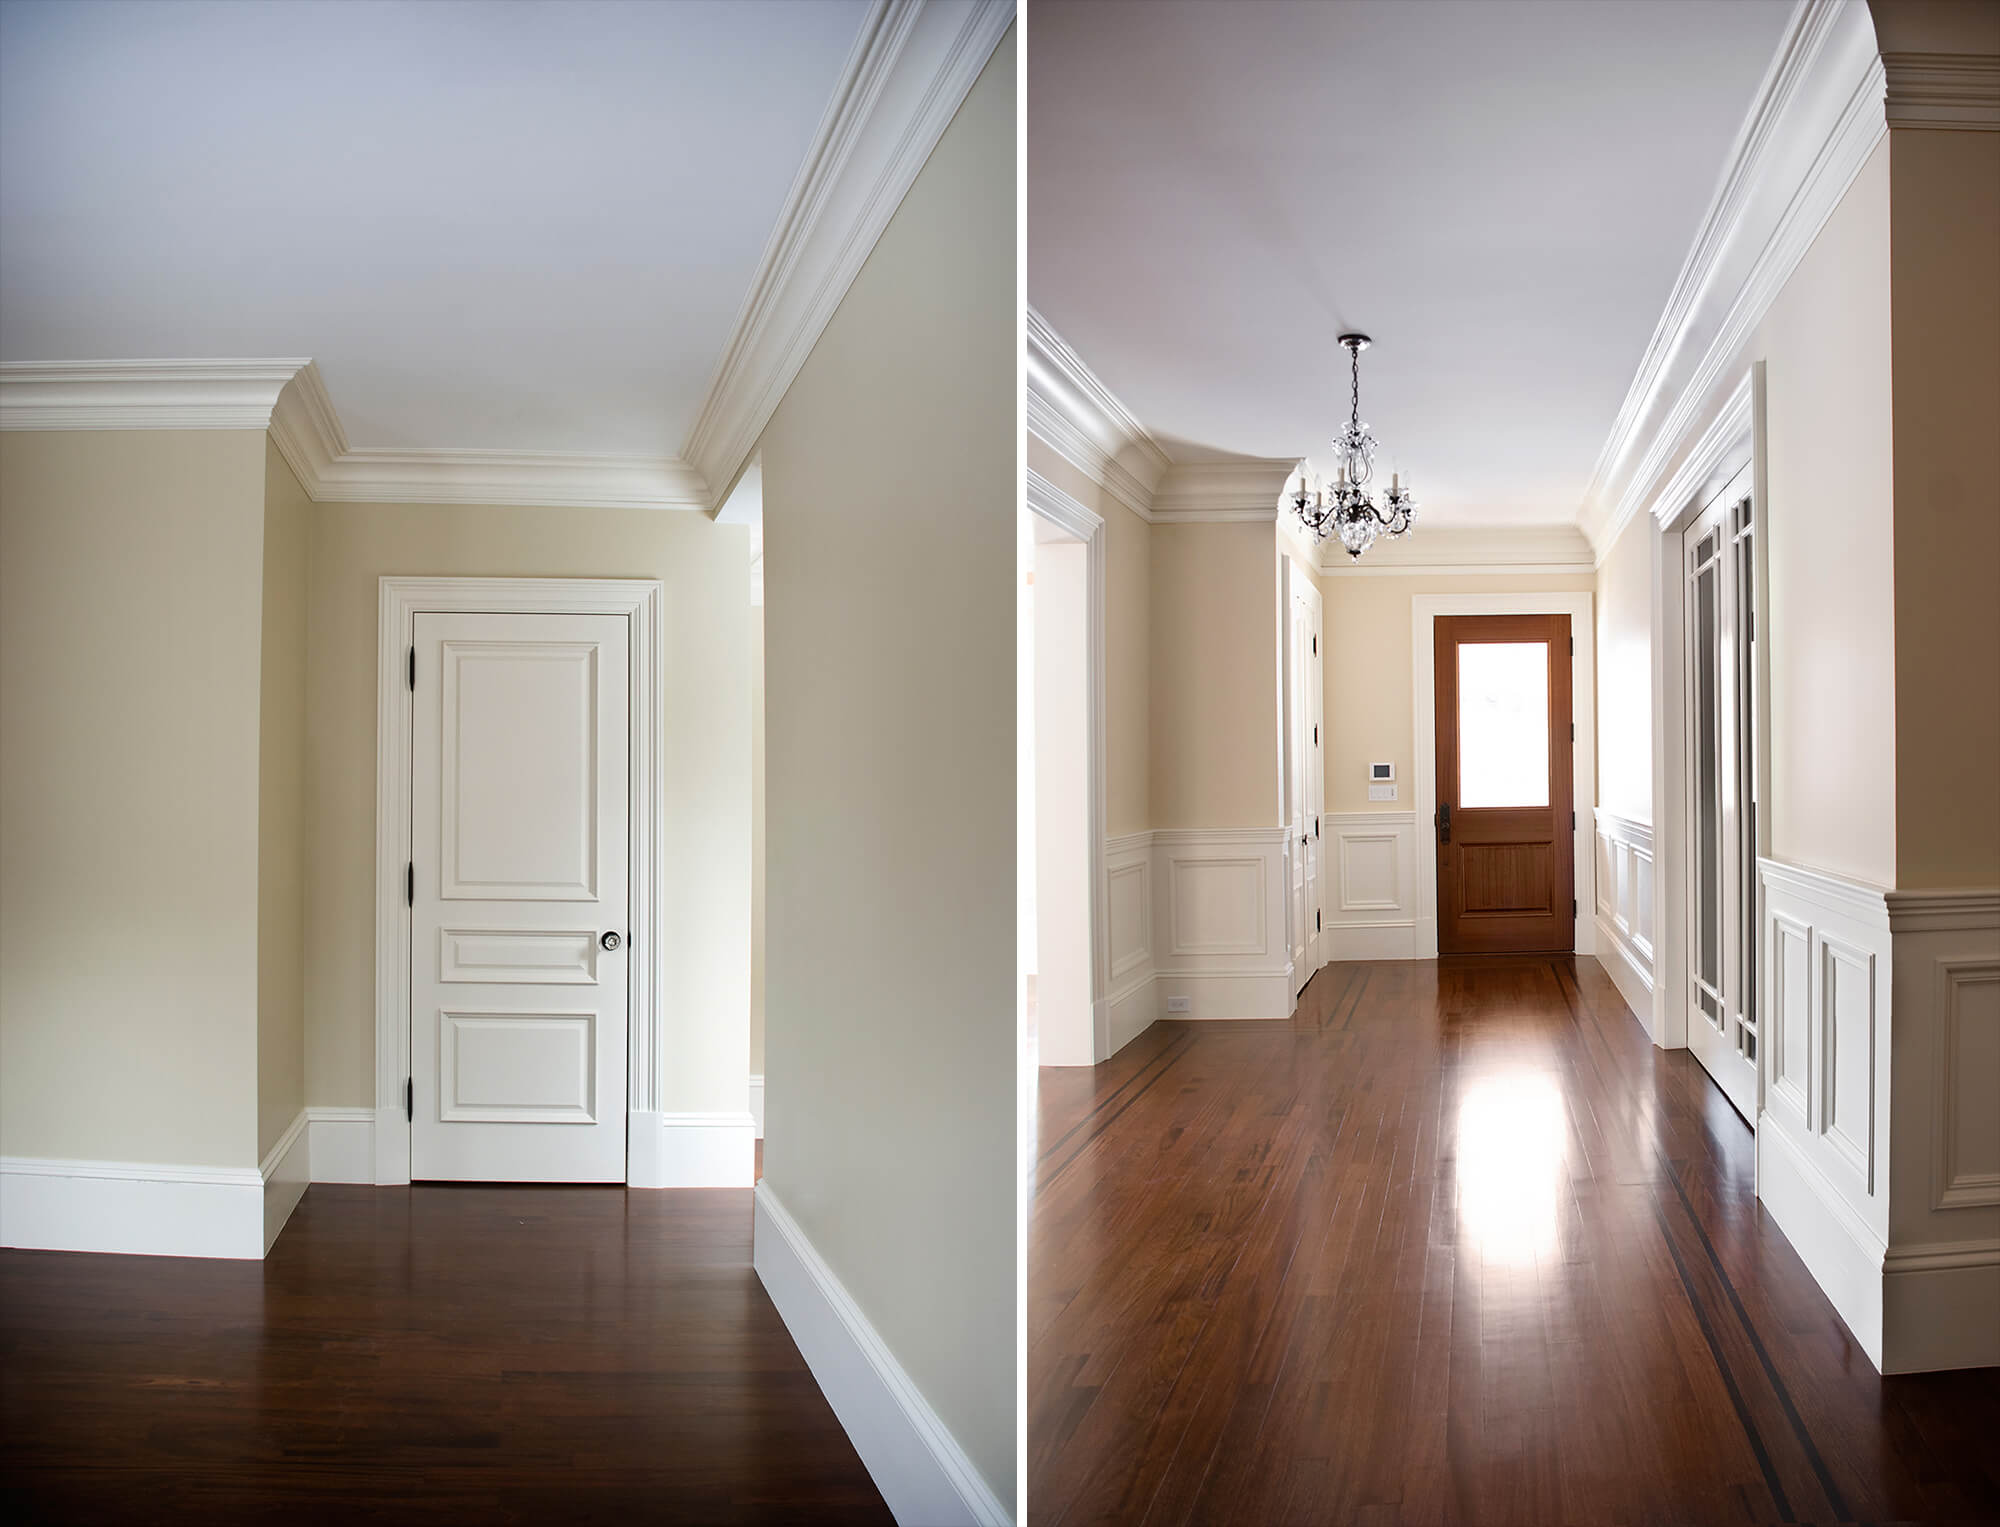 How to Choose the Correct Size Crown Moulding – Horner Millwork